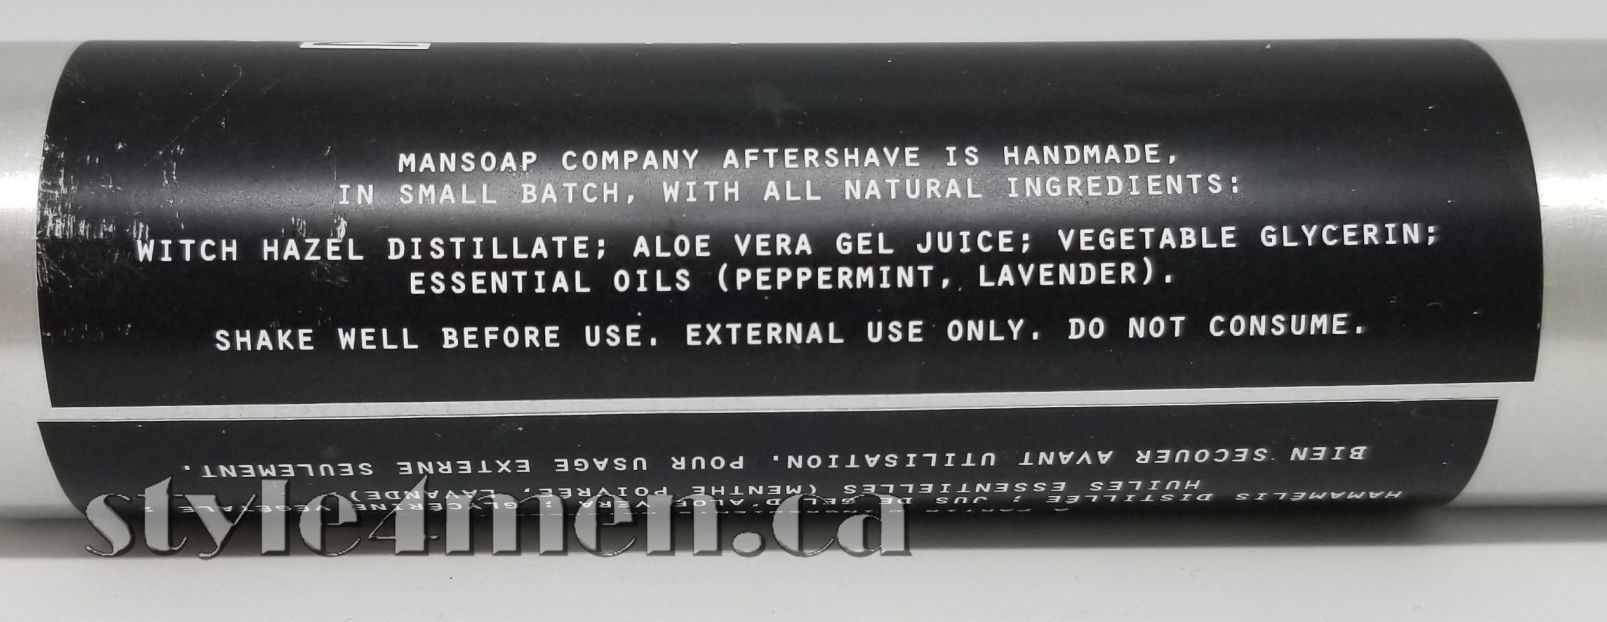 ManSoap Aftershave